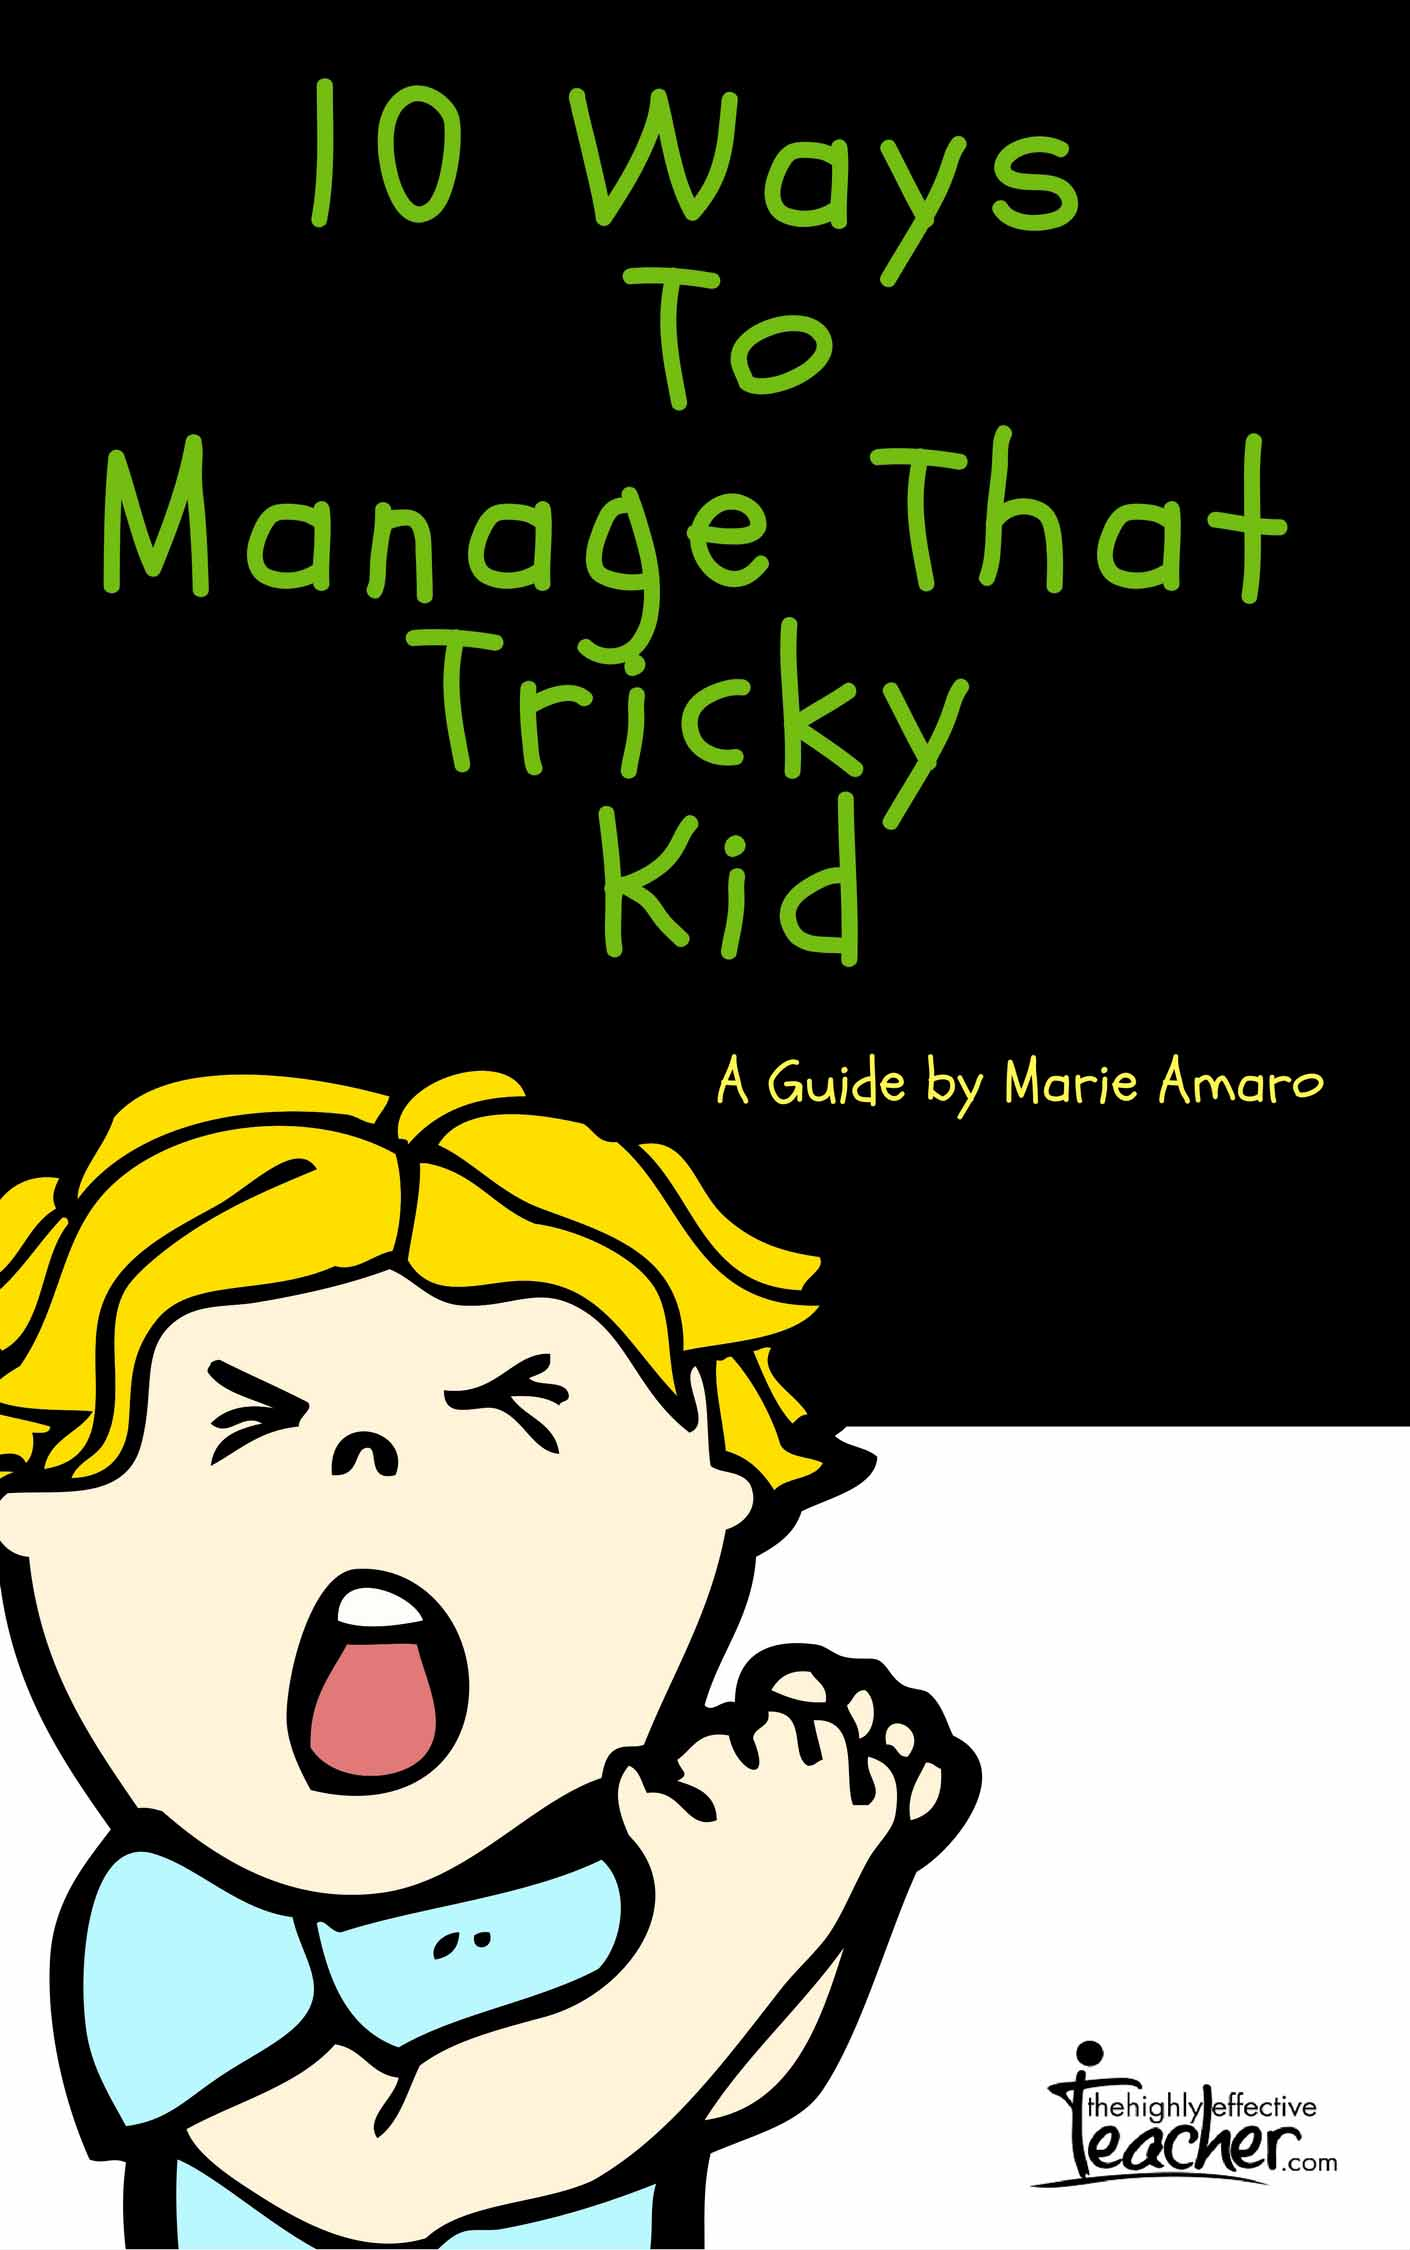 10 Ways To Manage That Tricky Kid